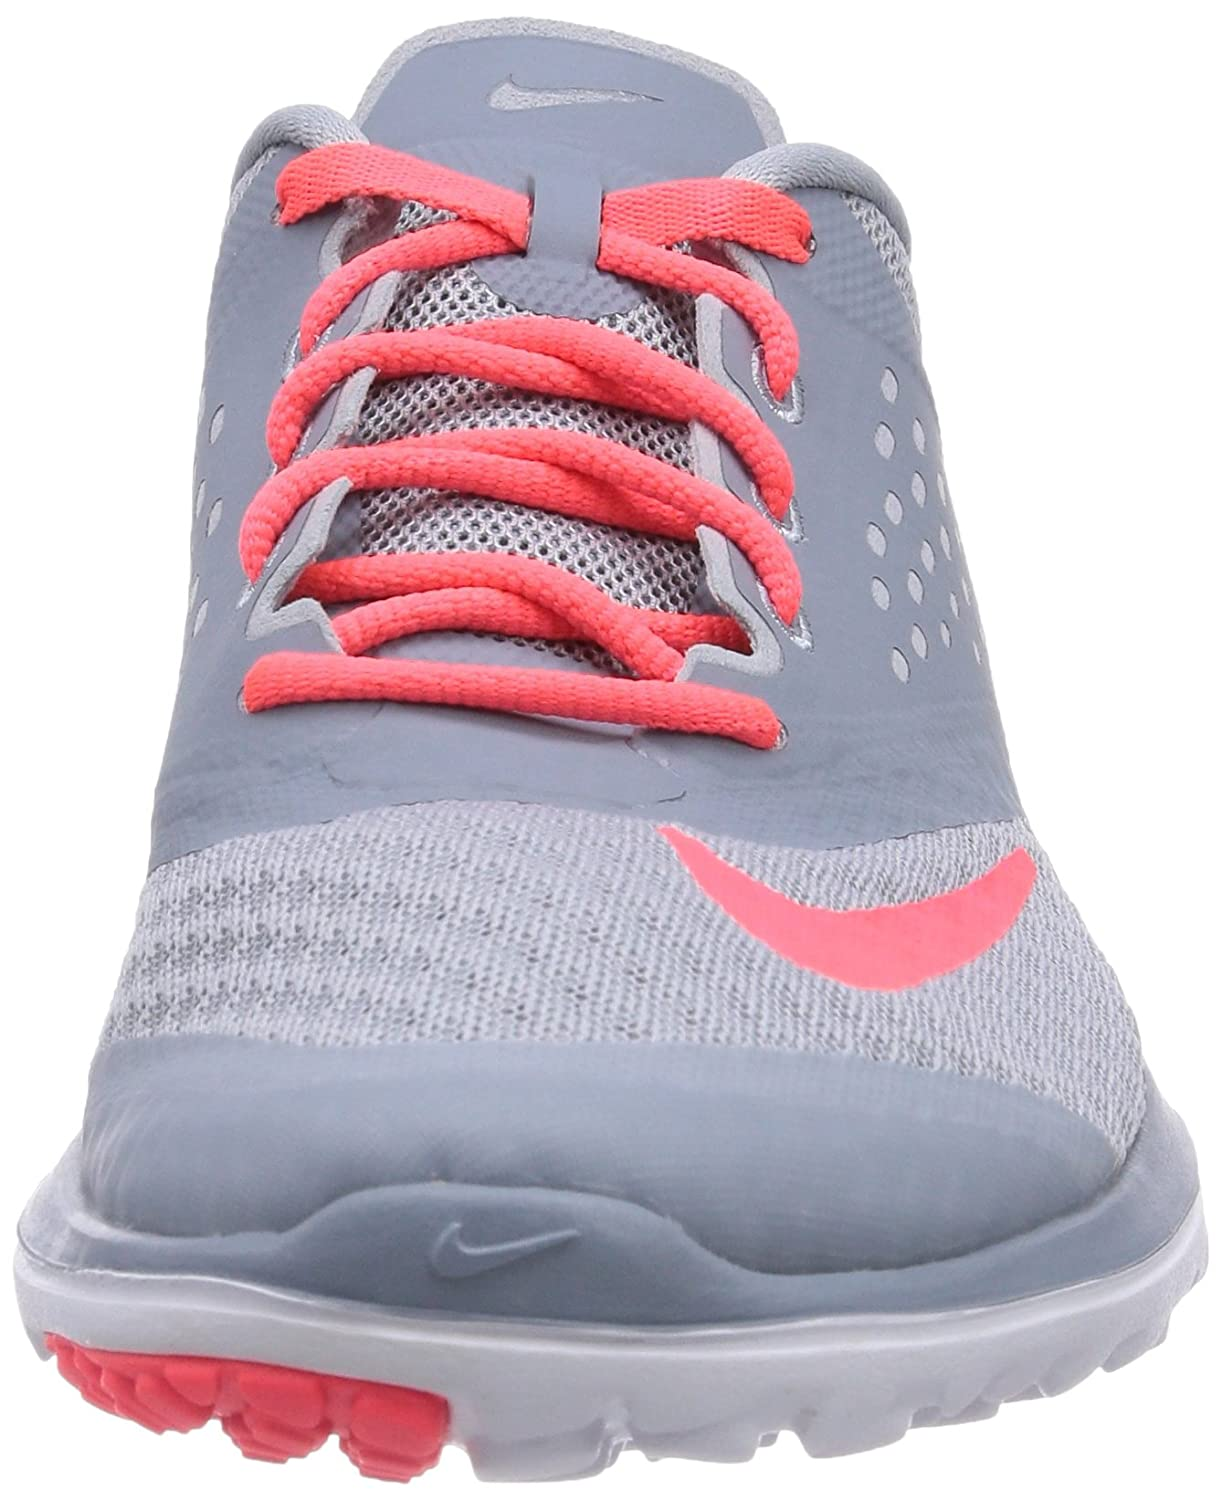 quality design 3e79e d6838 Amazon.com   NIKE Women s Fs Lite 2 Running Shoes   Road Running